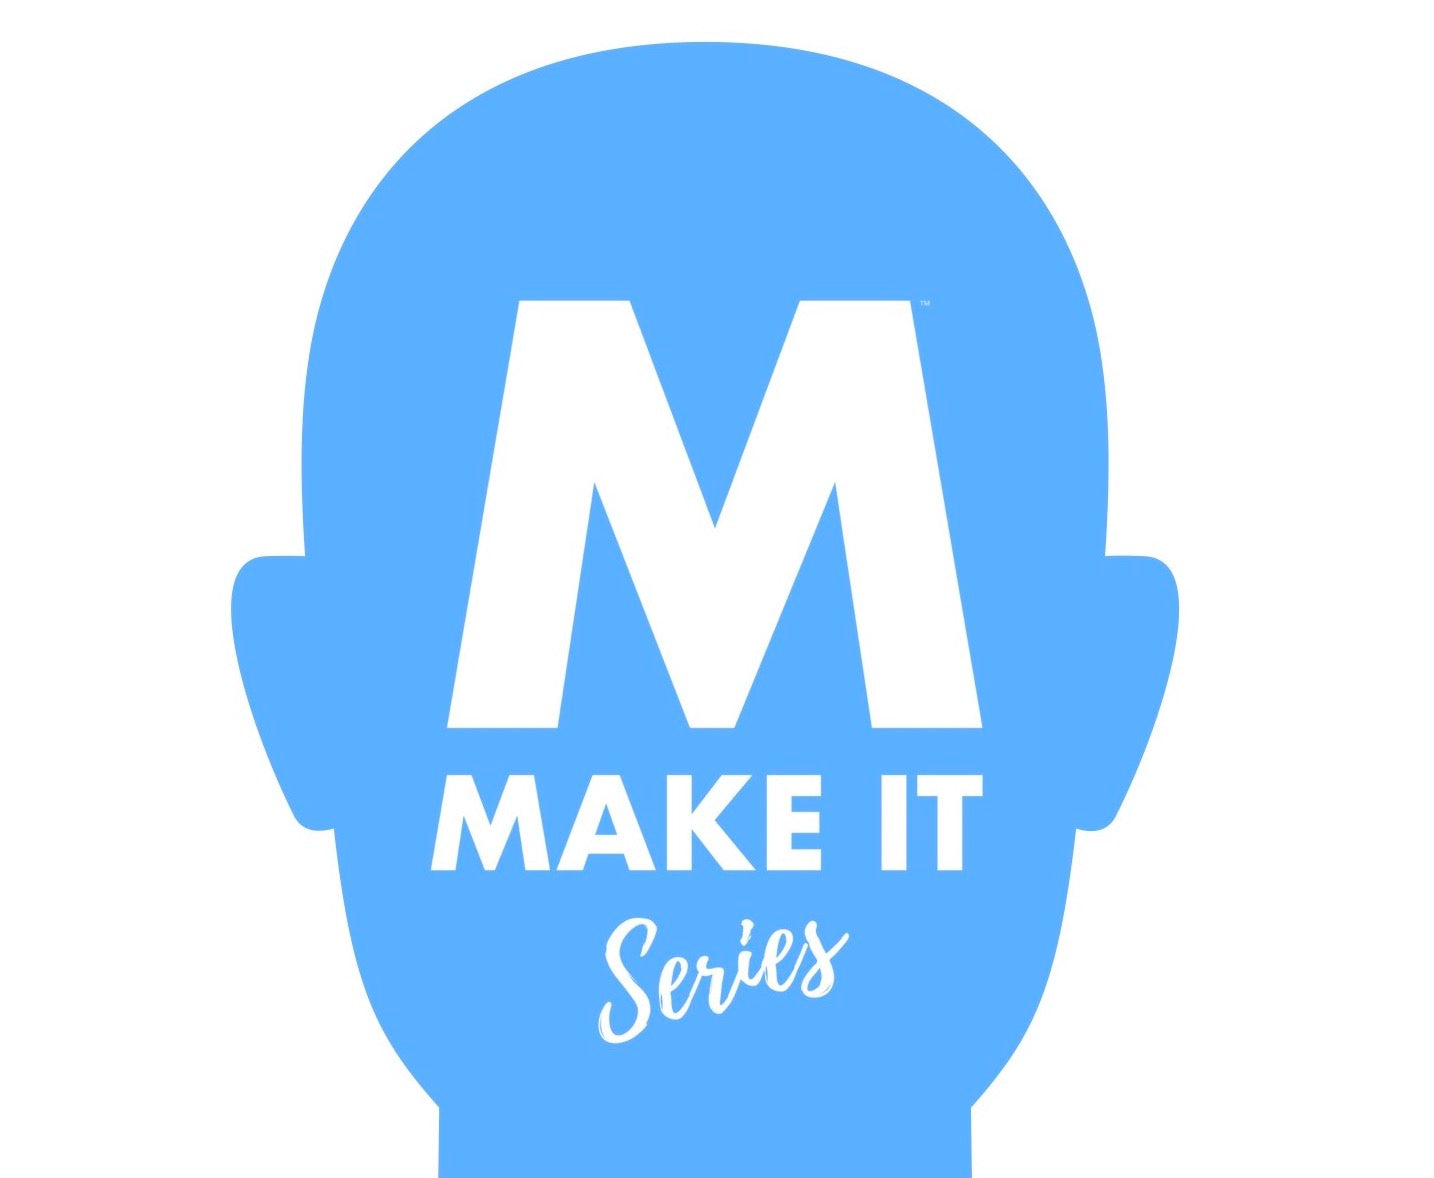 MAKE IT Series